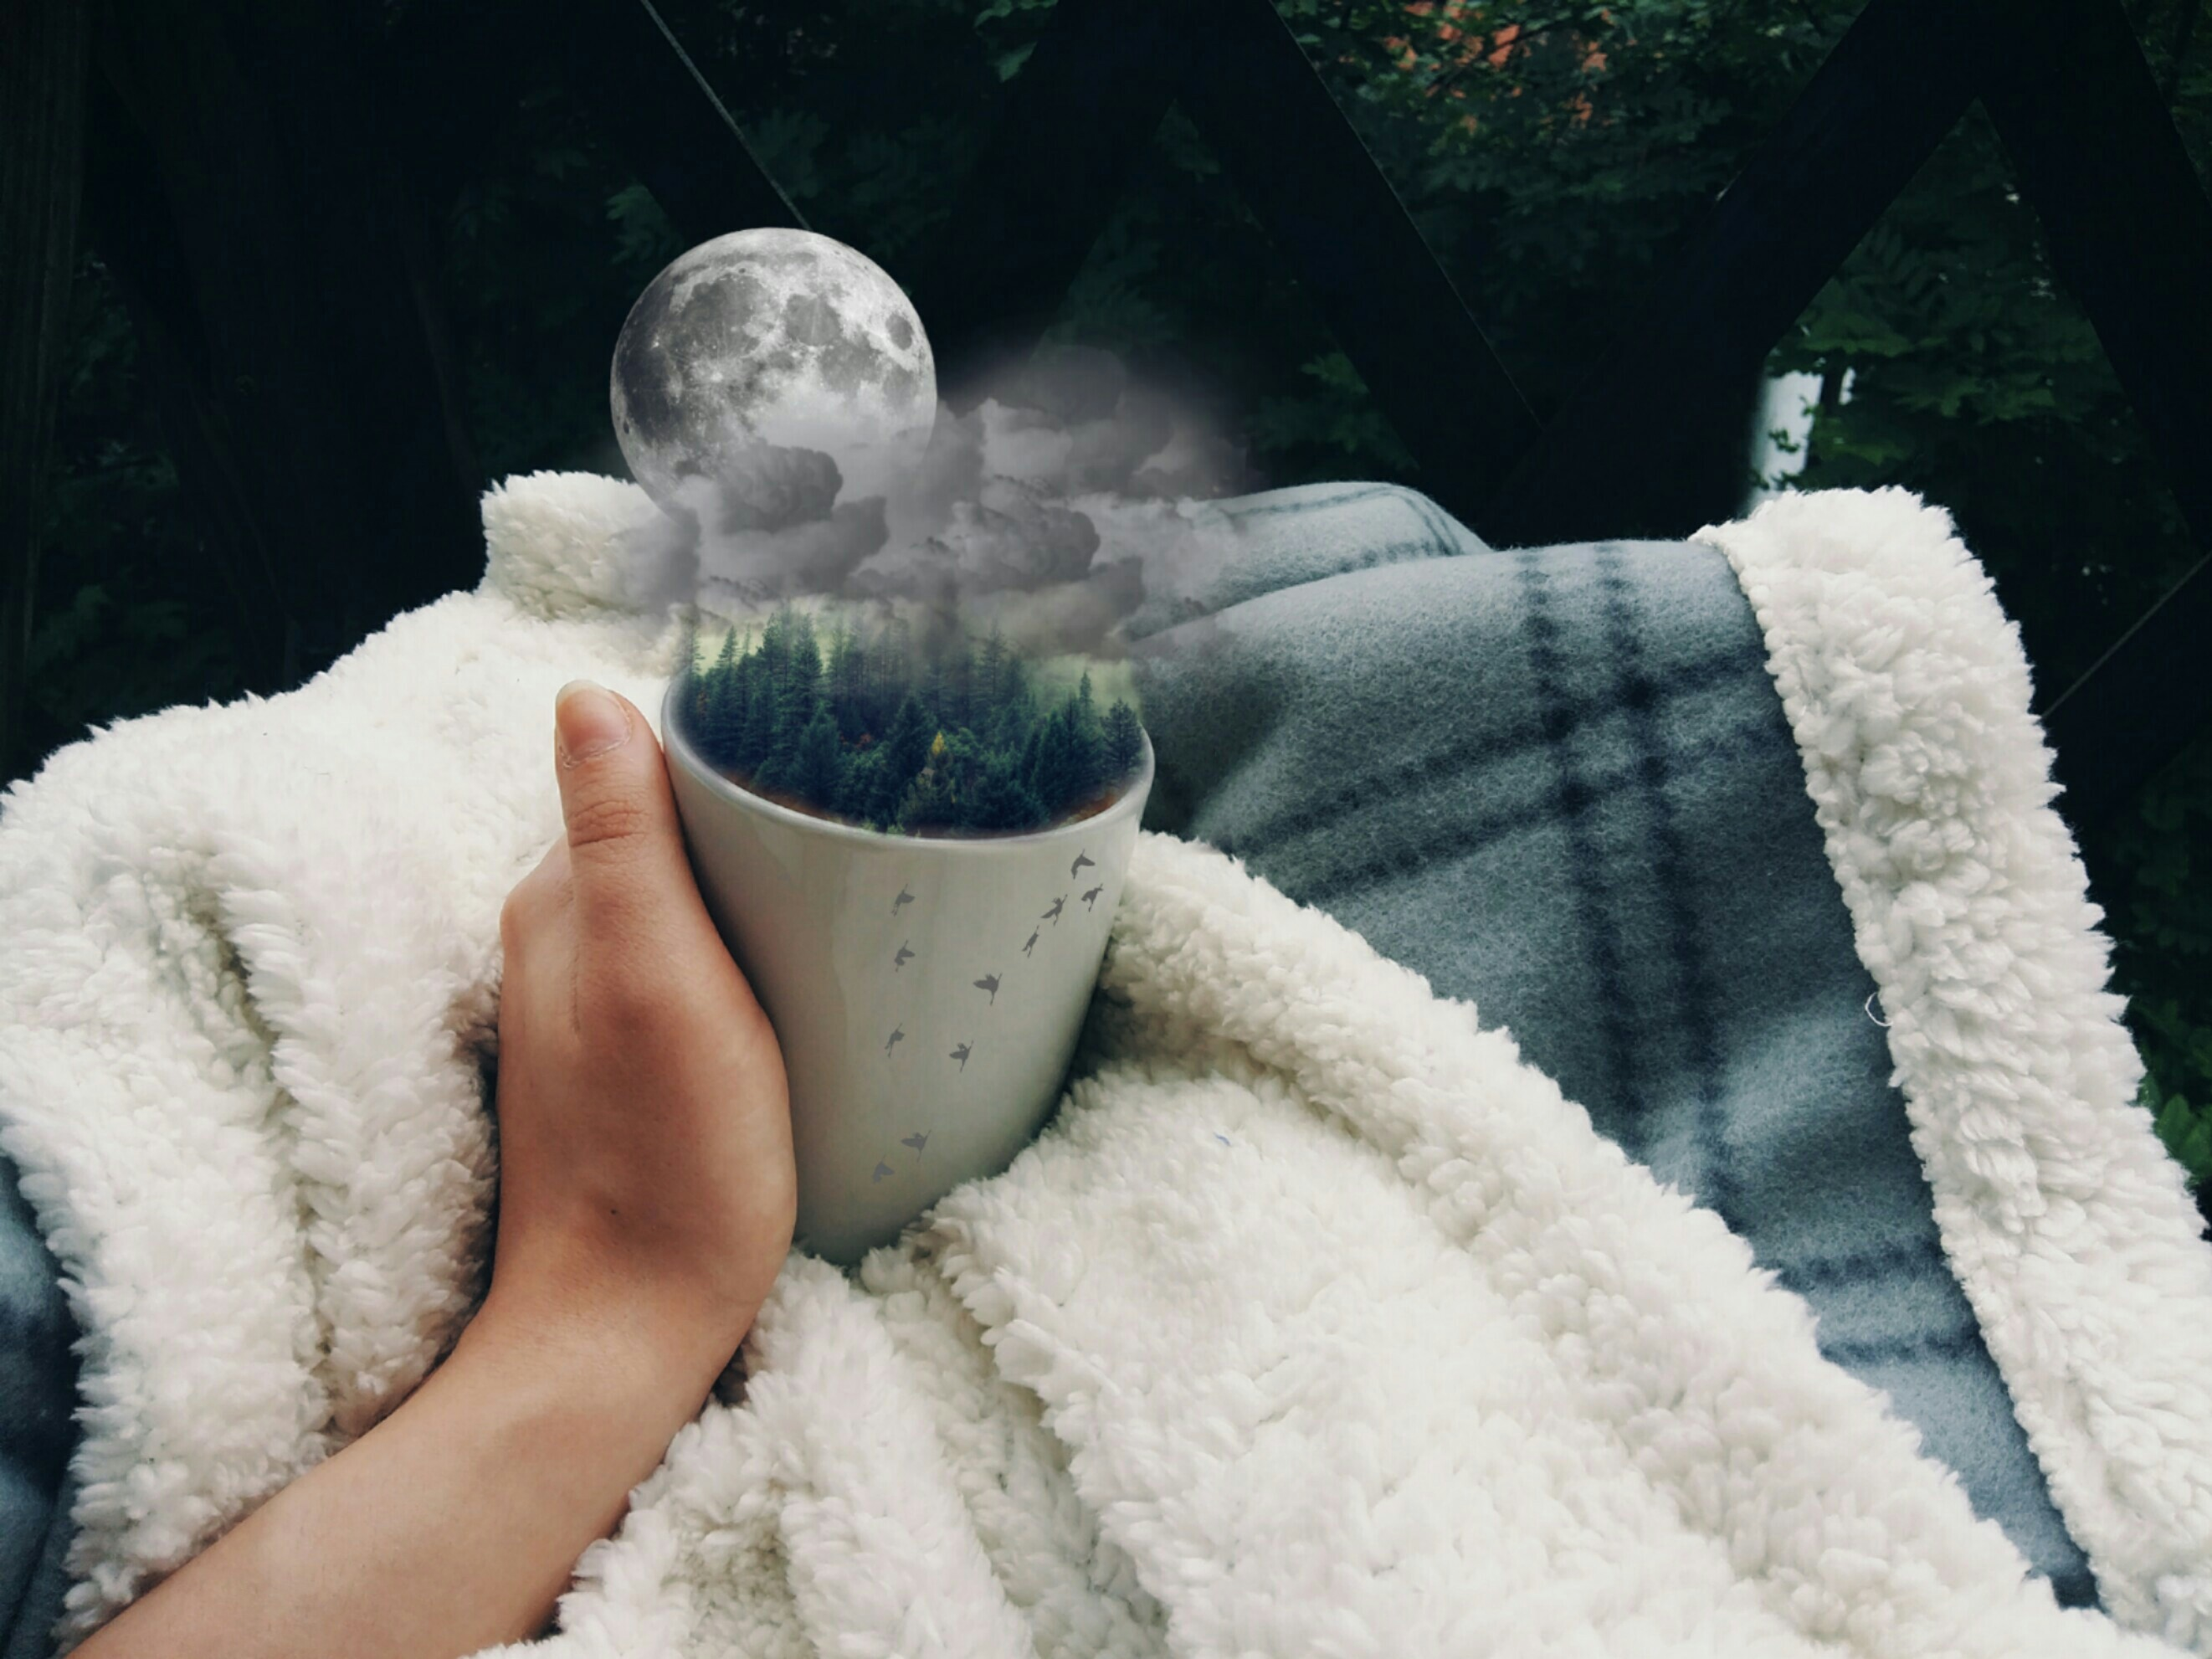 Follow me on instagram: iyukihana#photography #editedwithpicsart #coffee #moon #cup #hand #blanket #serenity #trees #colorful #relaxing #clouds